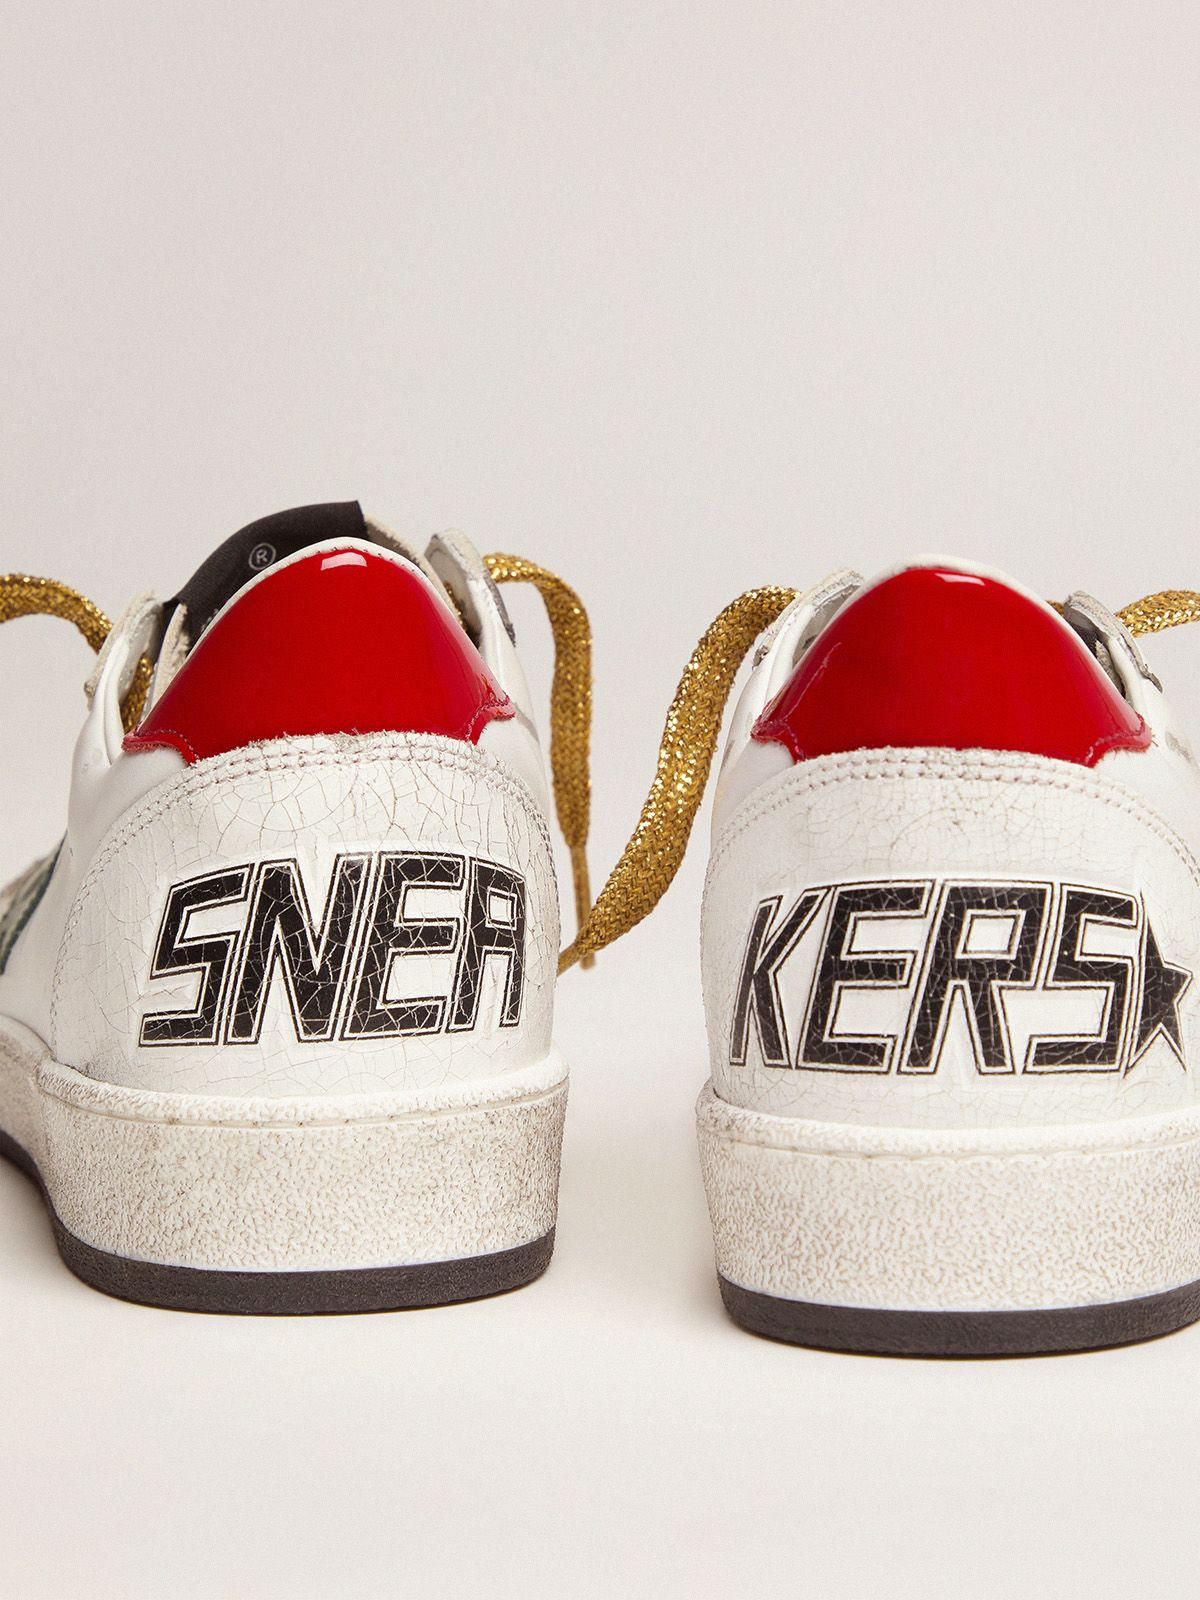 Ball Star sneakers with green star and red heel tab 3